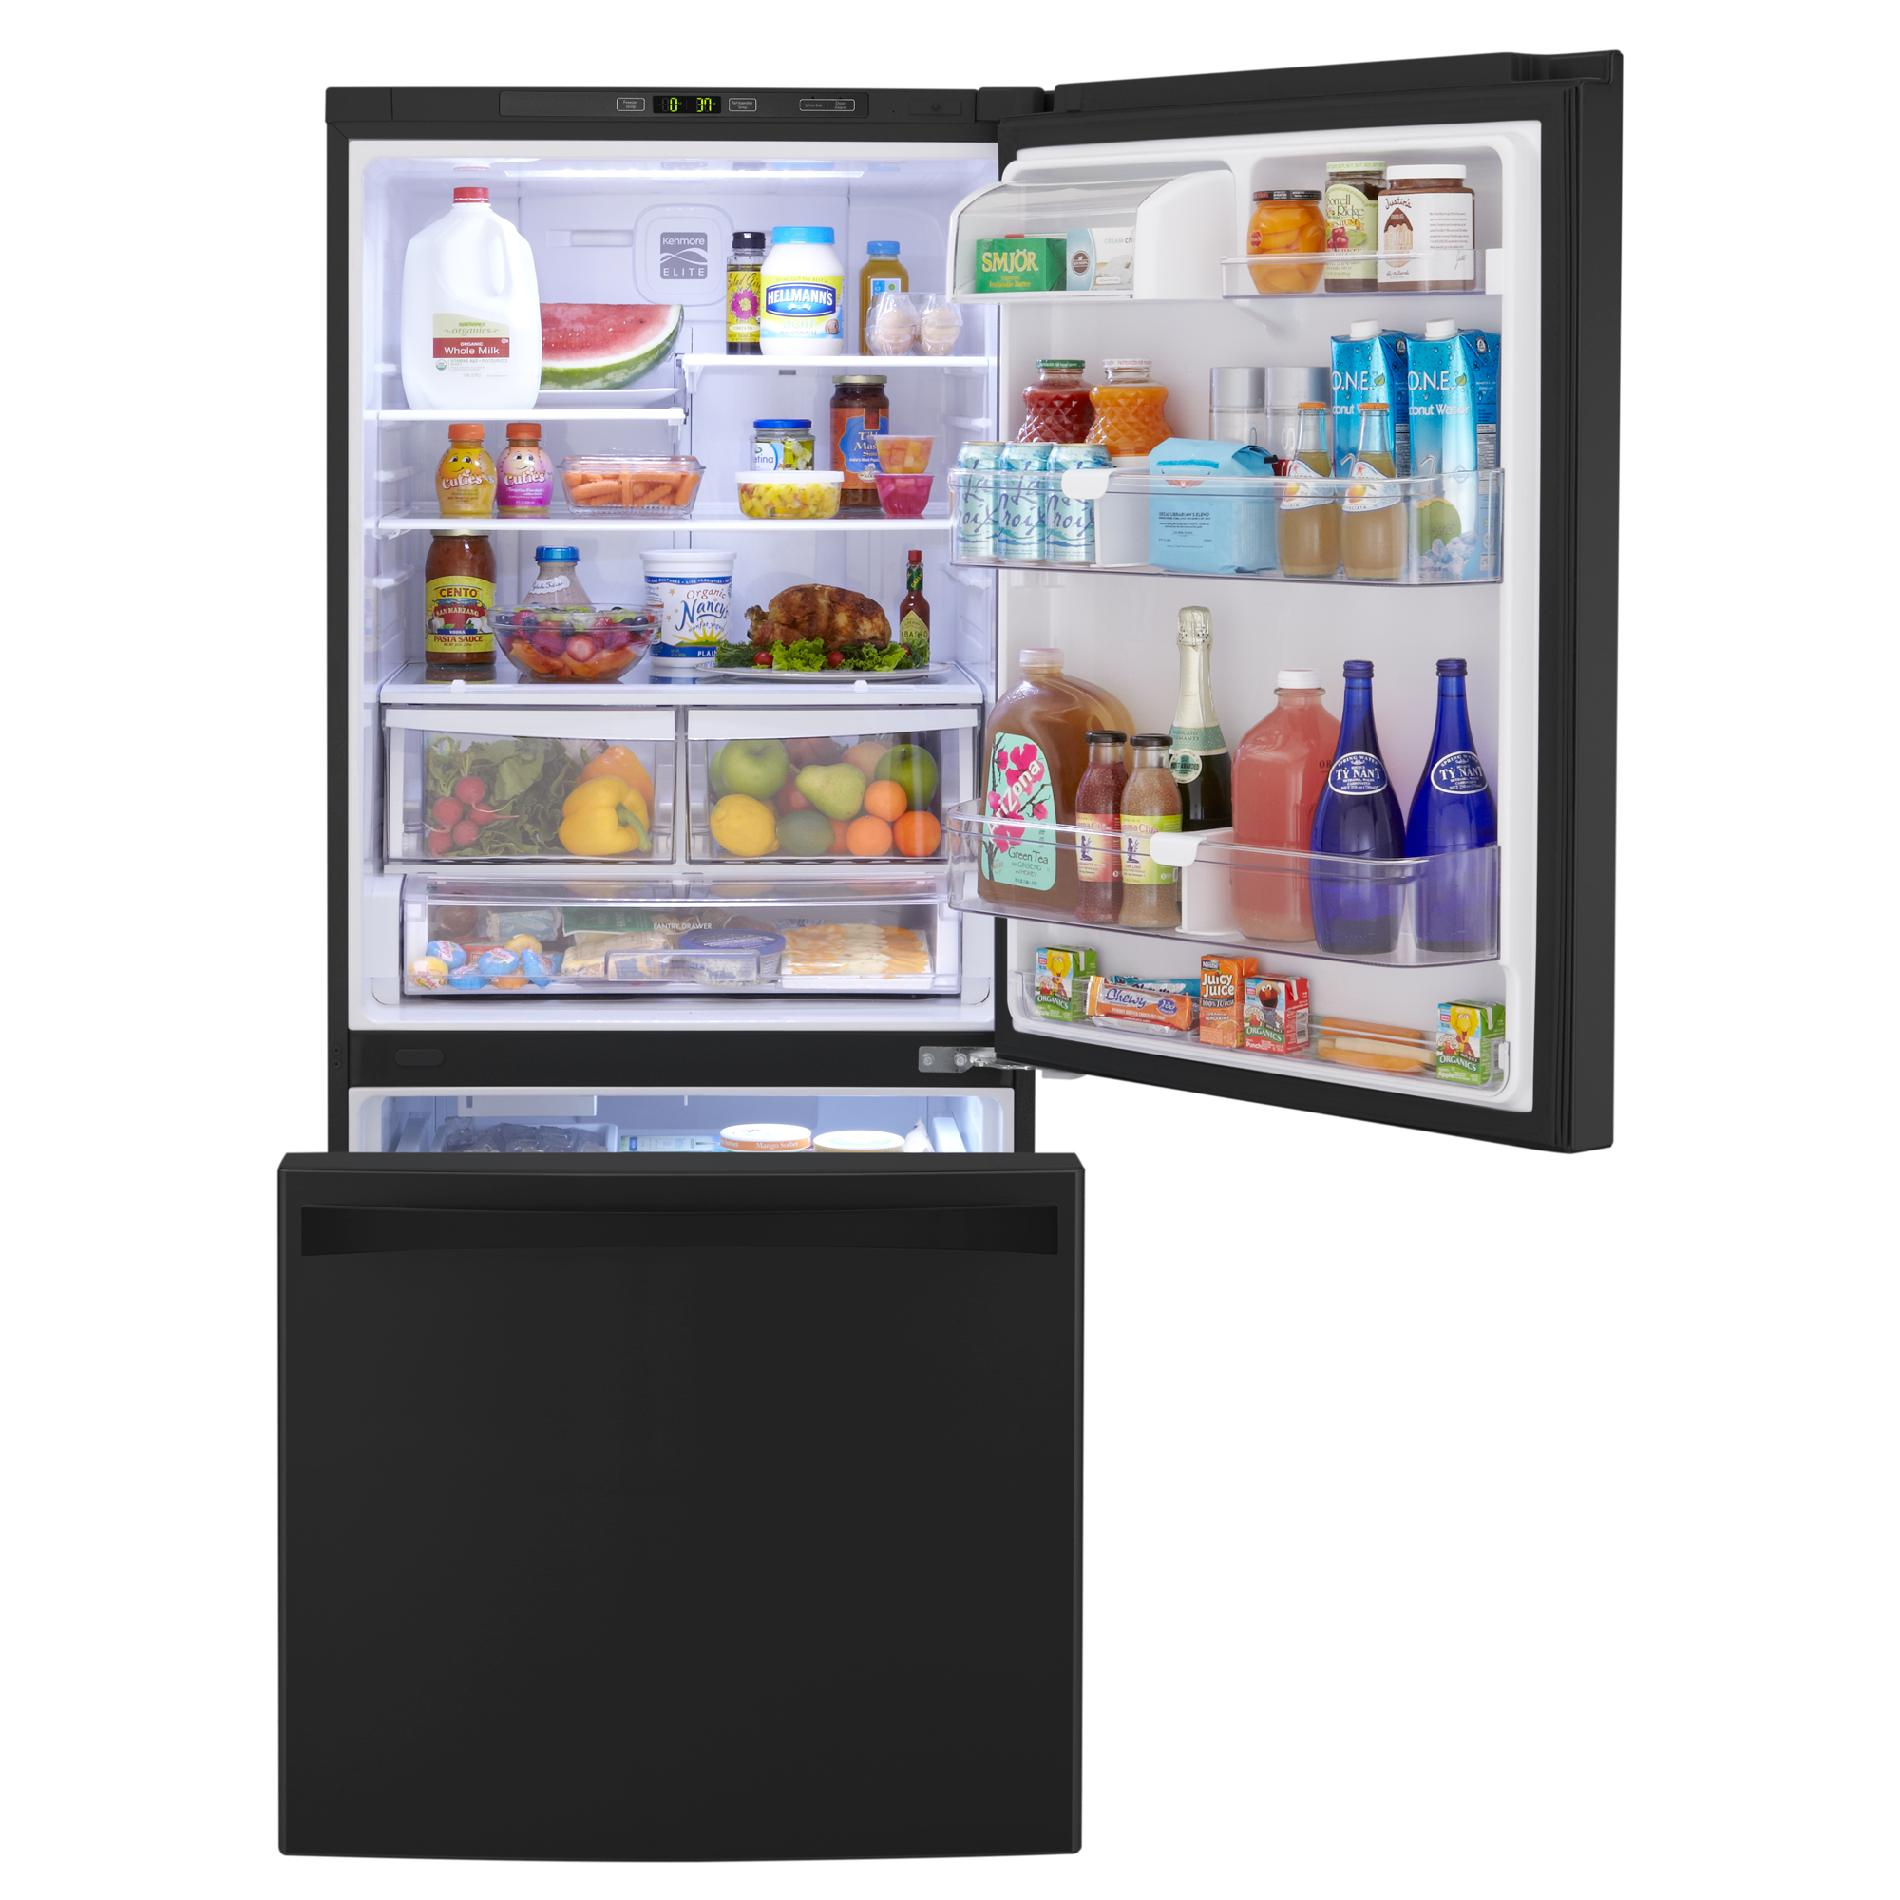 Kenmore Elite 22 cu. ft. Bottom-Freezer Refrigerator – Black